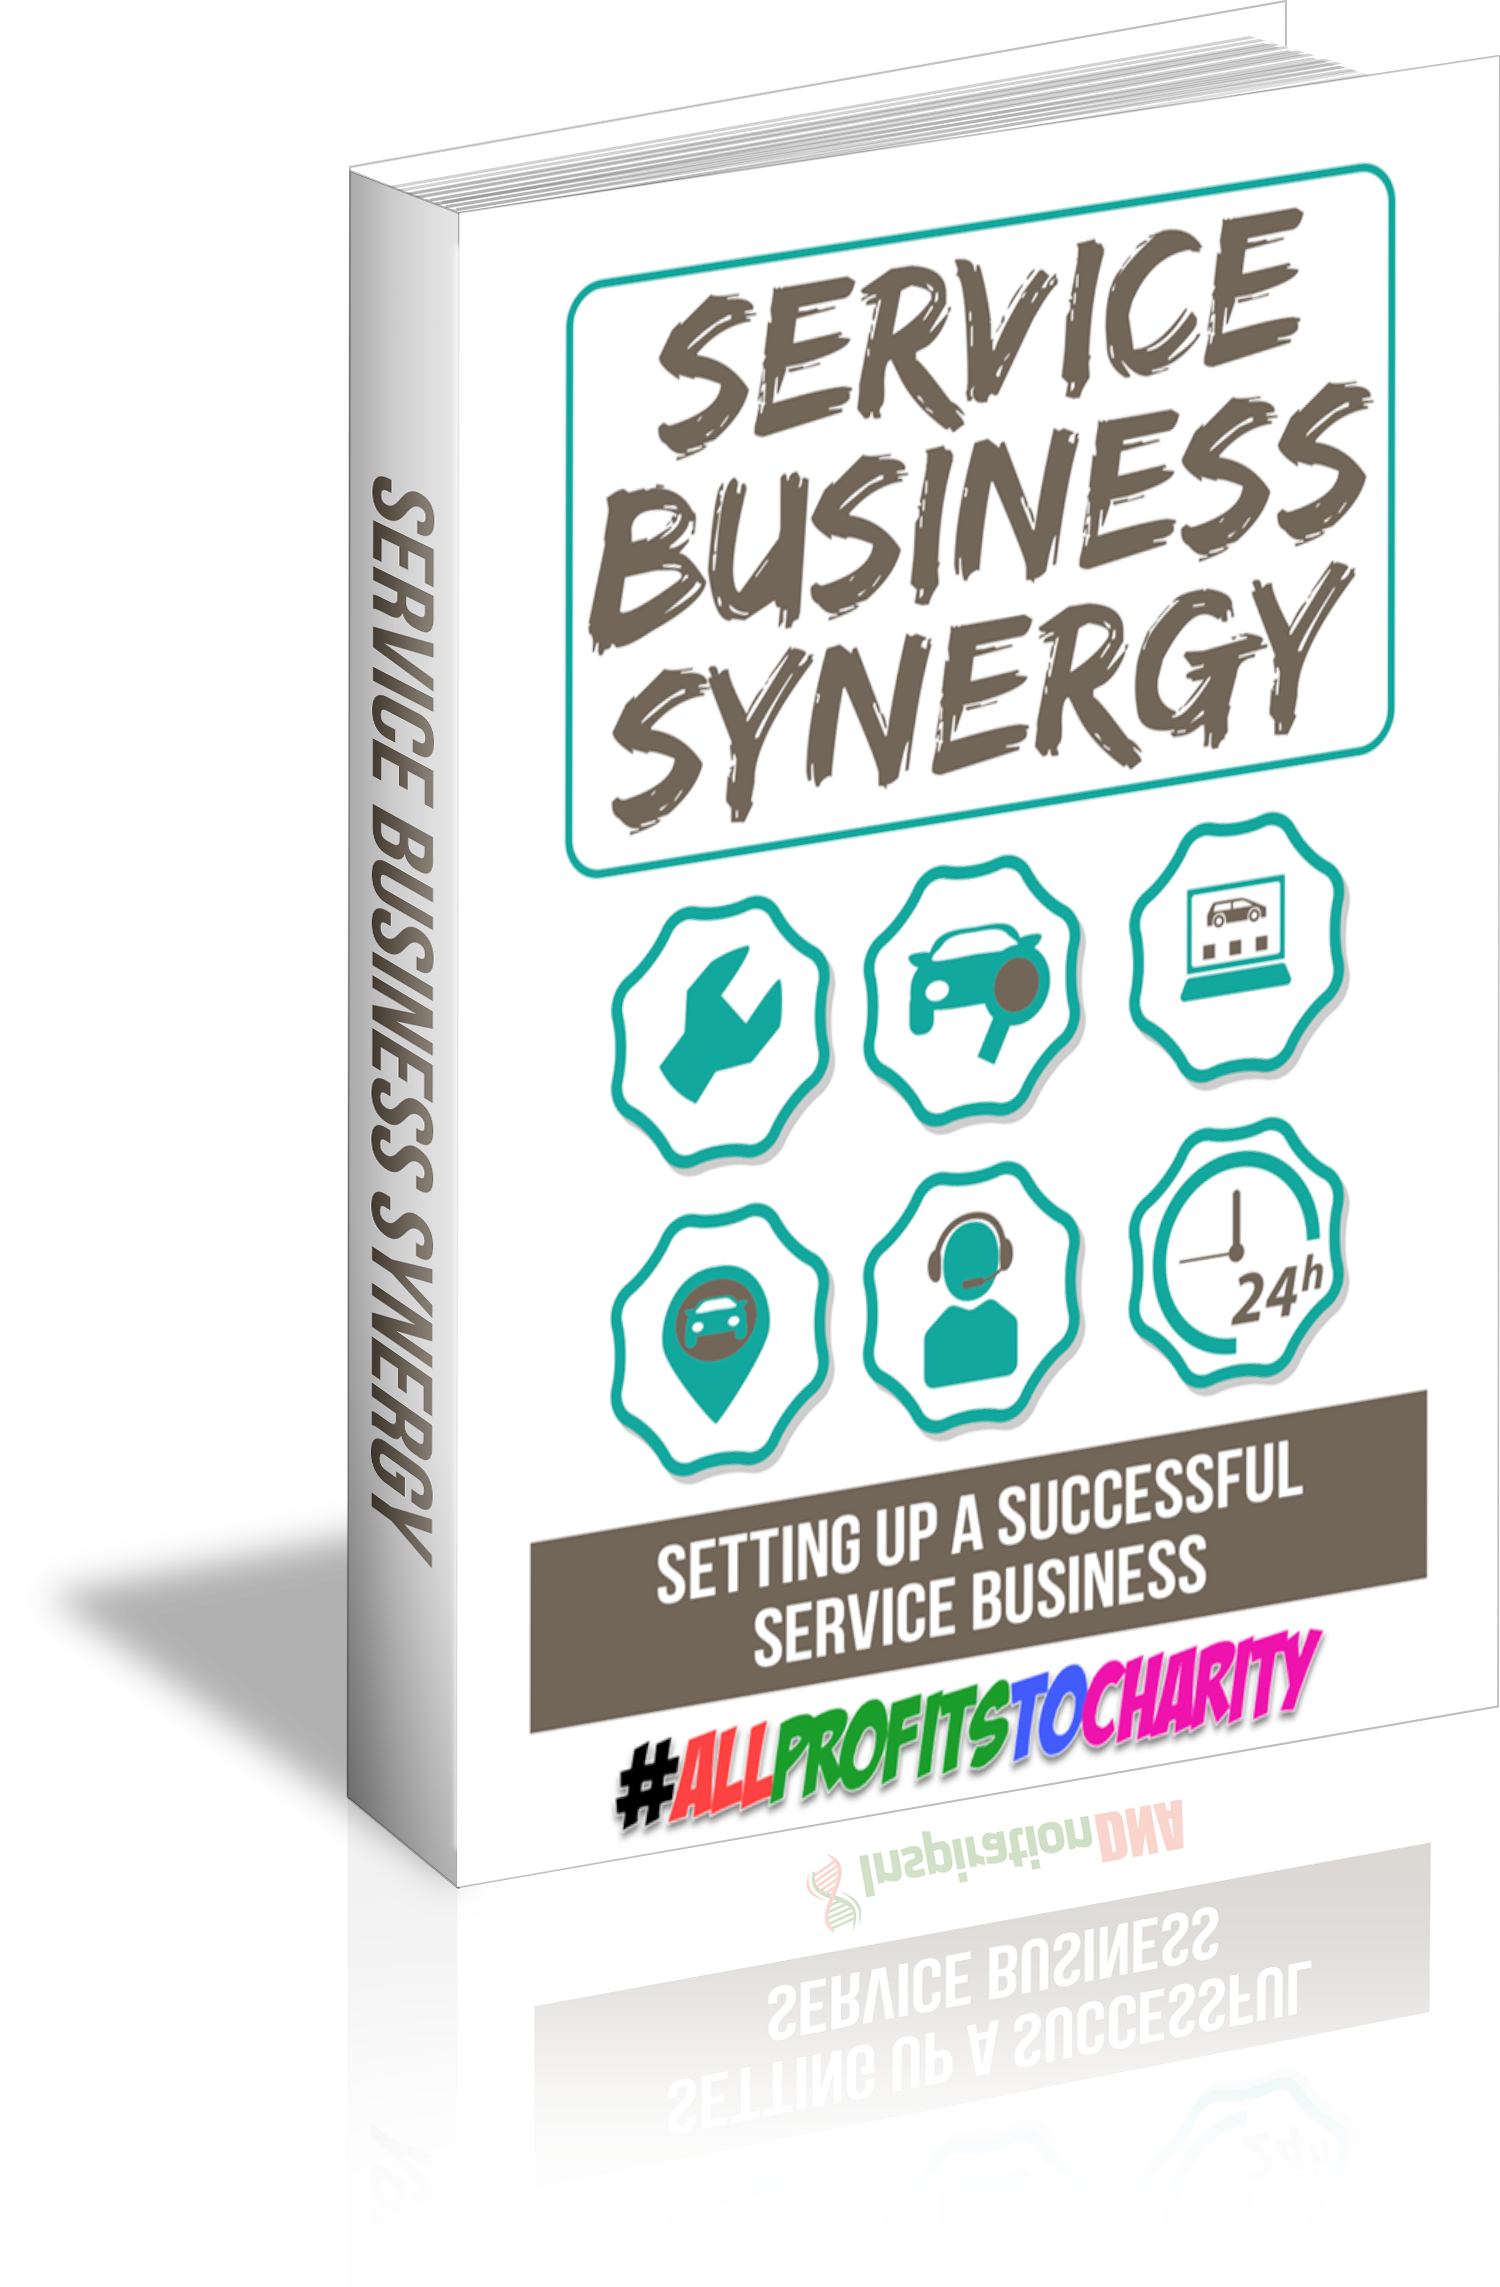 Service Business Synergy cover